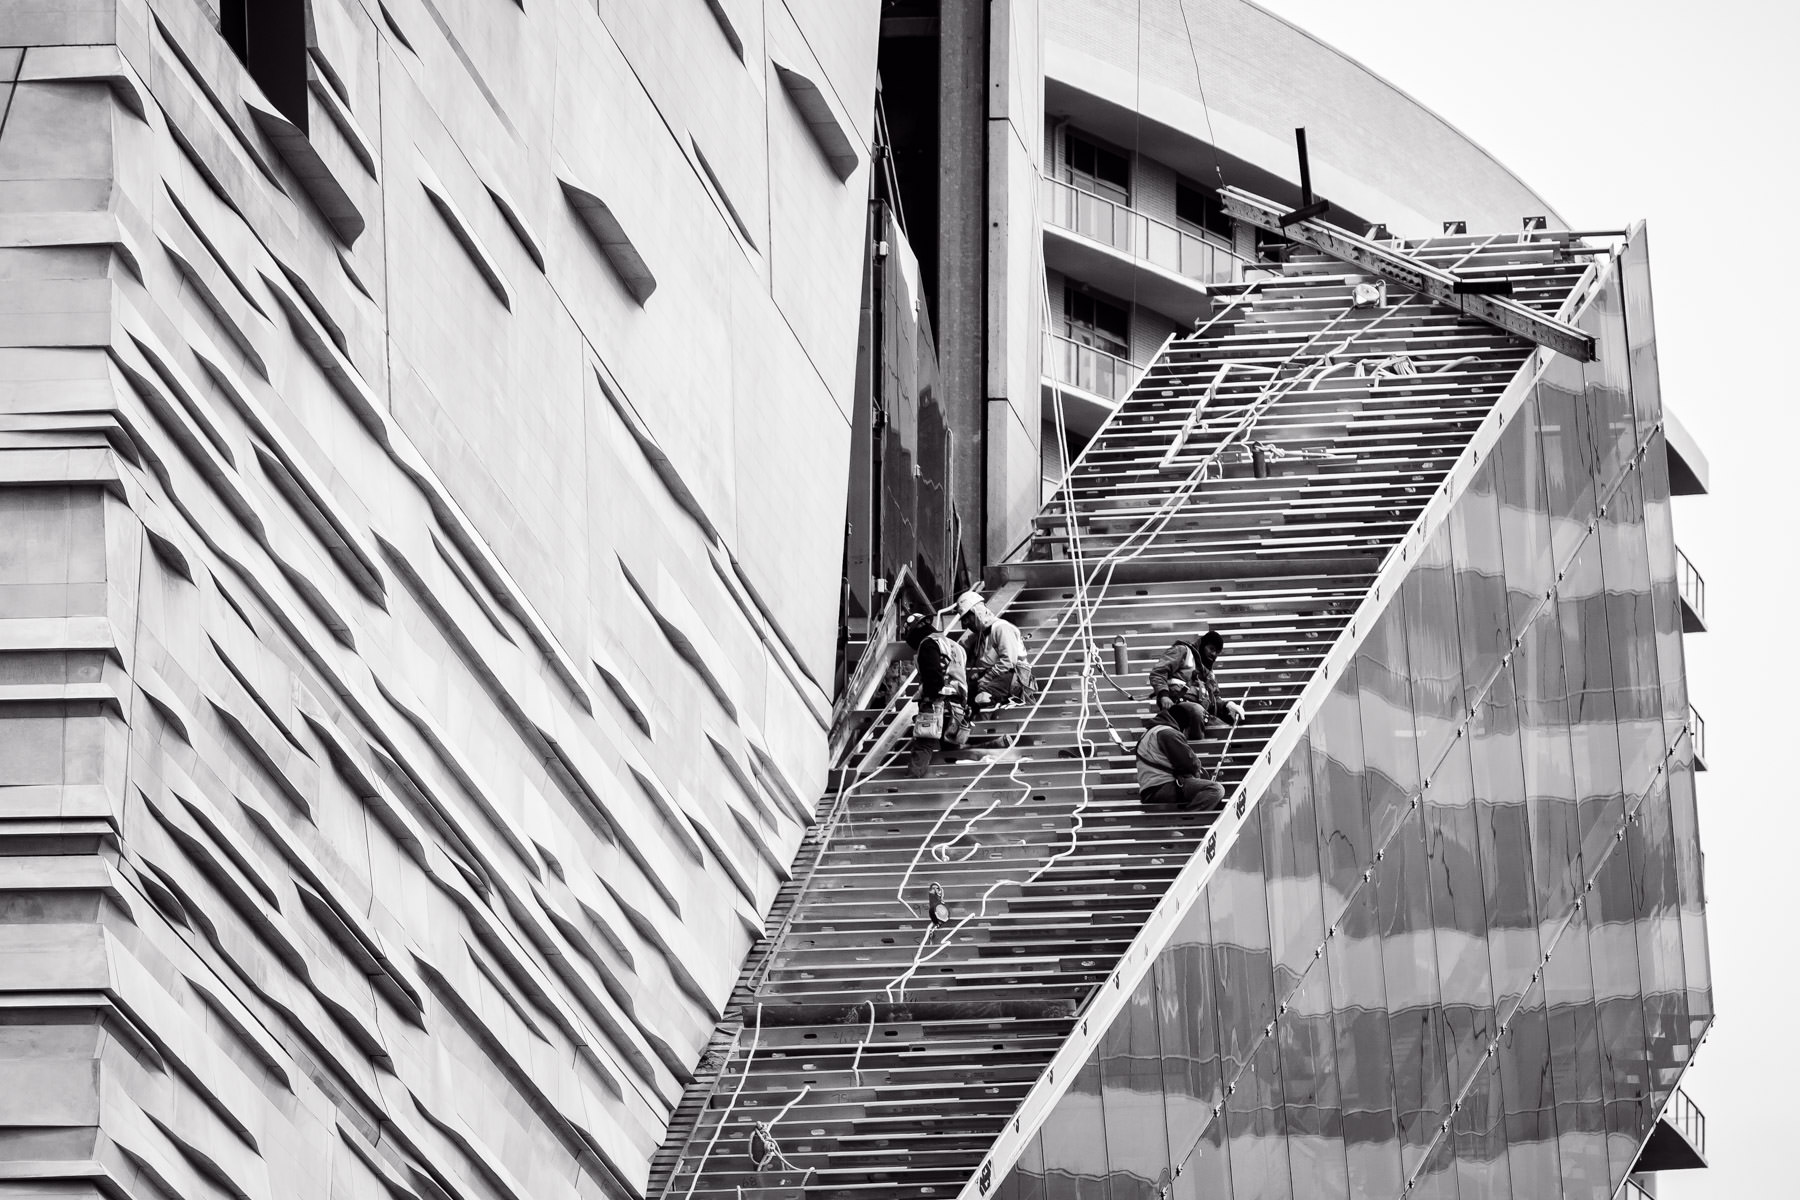 Workers on the Perot Museum of Nature and Science—designed by Pritzker Prize winner Thom Payne—near the West End of Downtown Dallas.